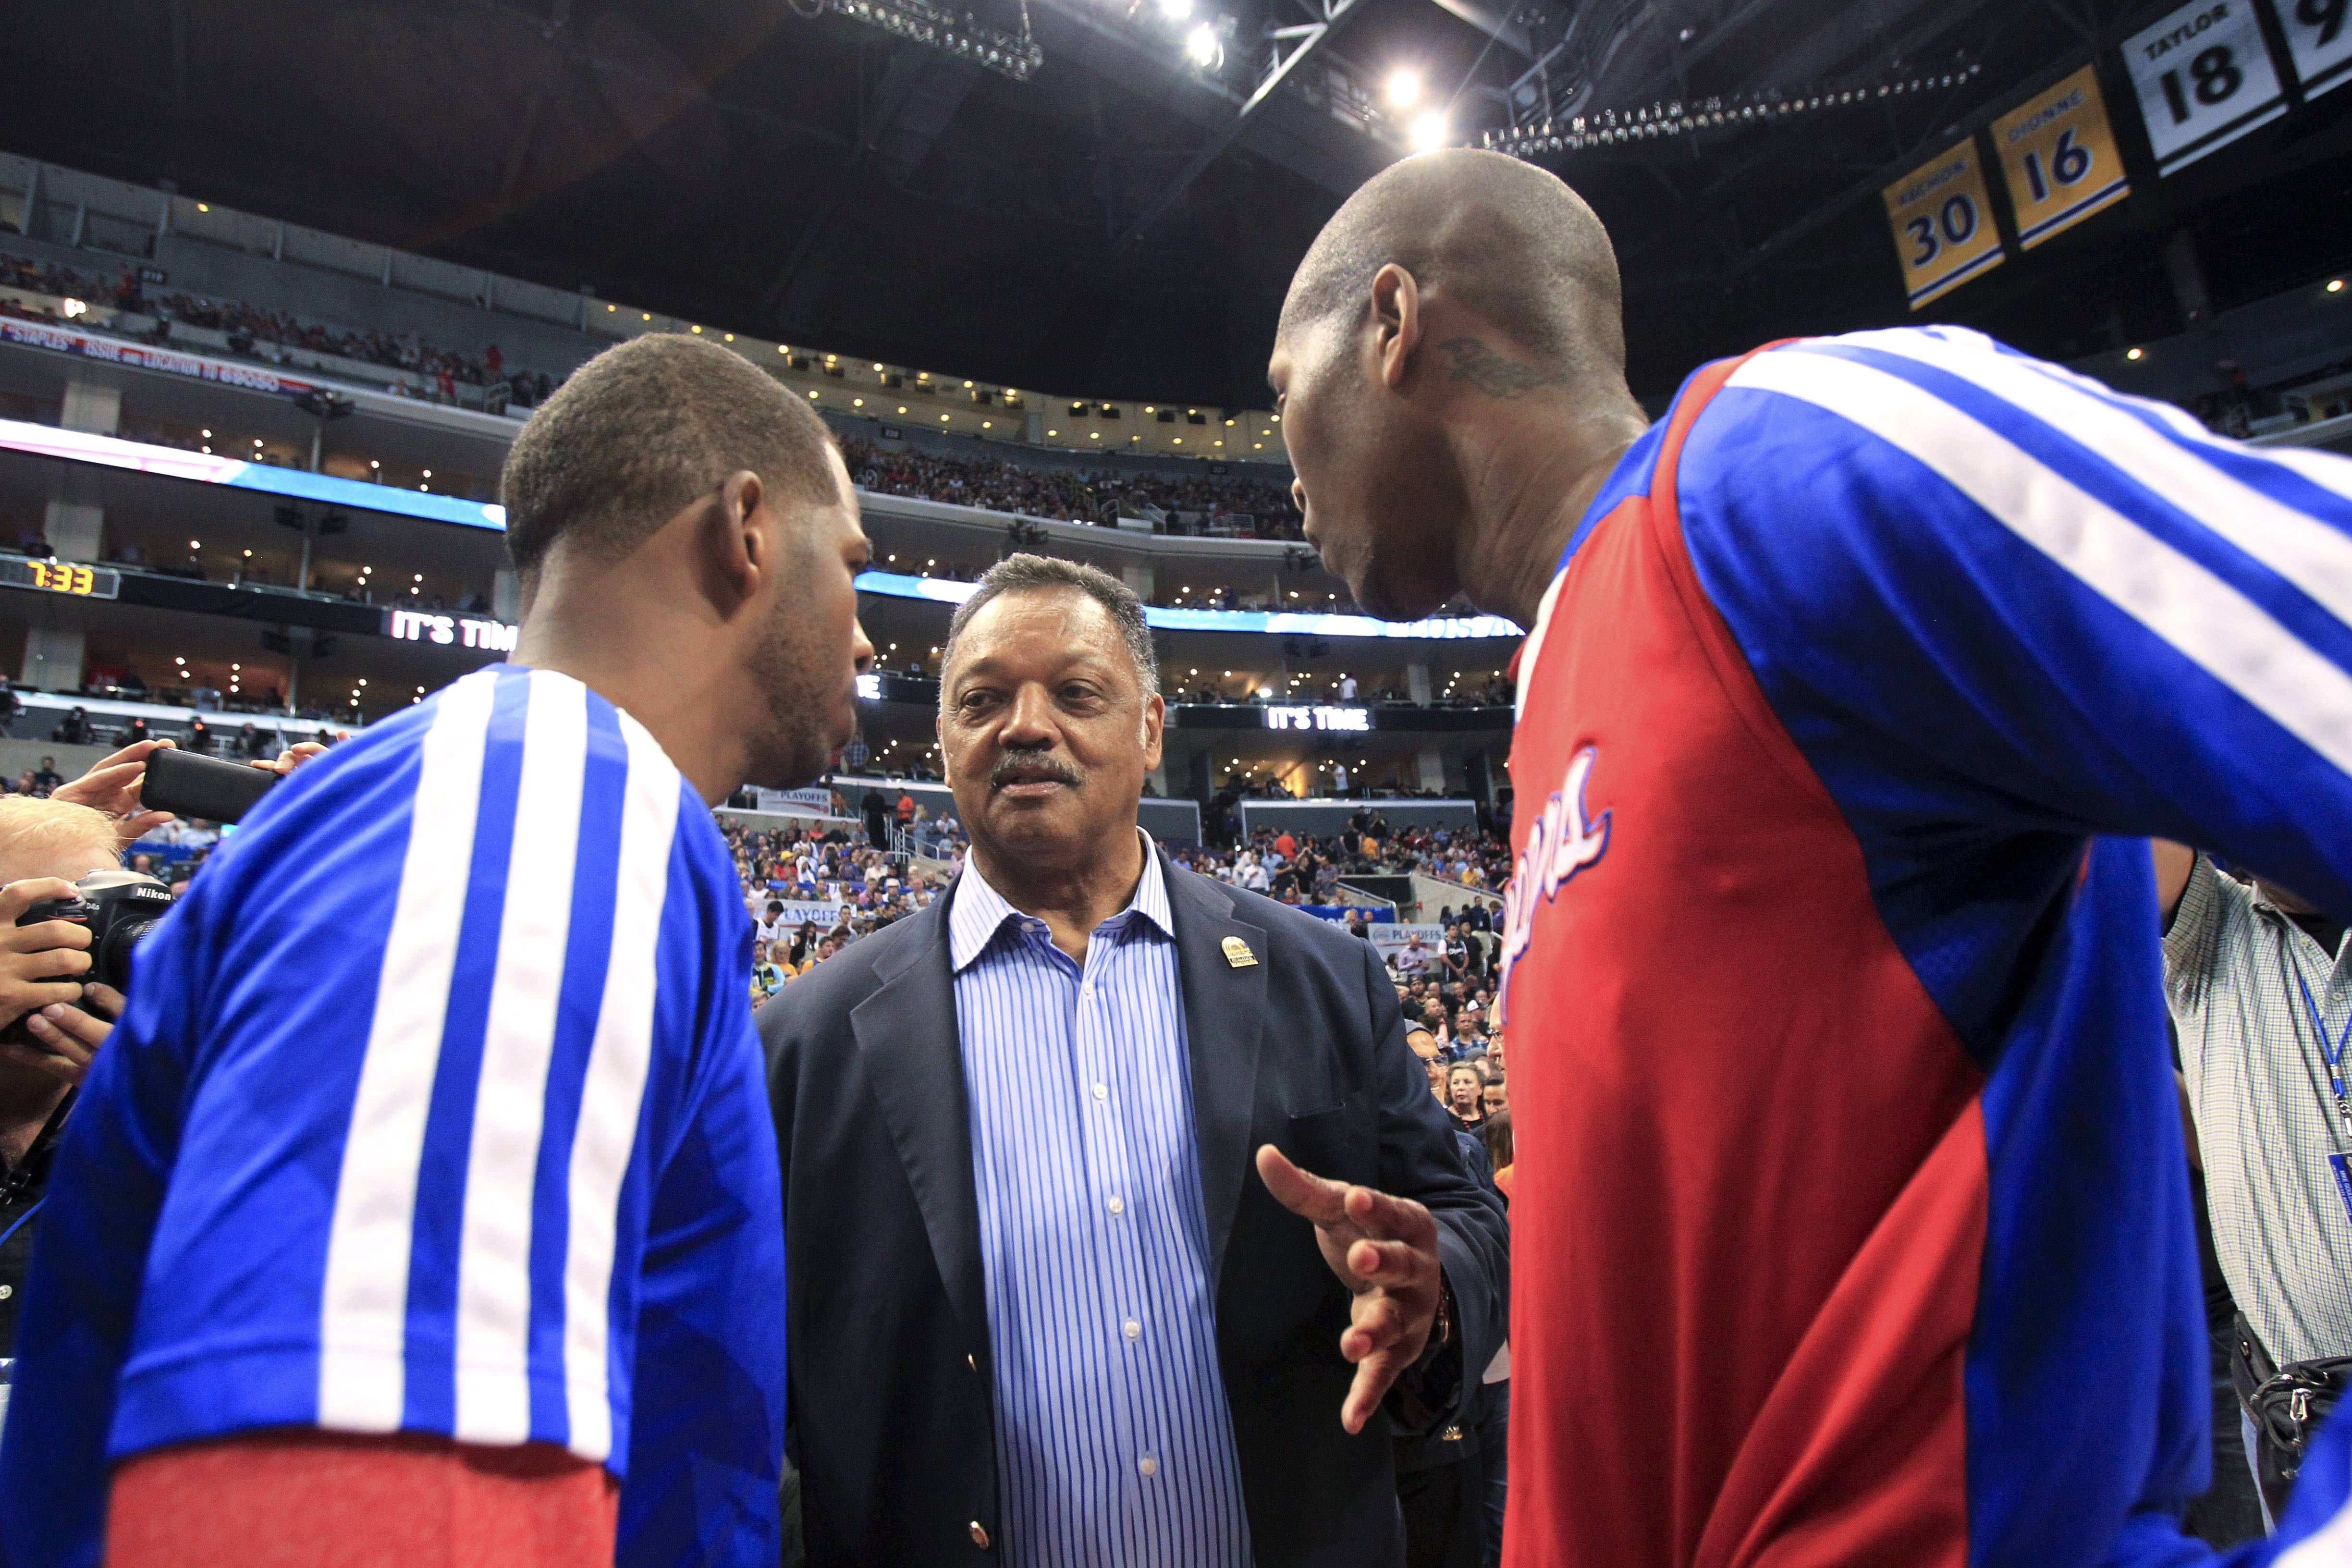 The Rev. Jesse Jackson, center, talks to Los Angeles Clippers' Chris Paul and Jamal Crawford before Game 5 of the Clippers' opening-round NBA basketball playoff series against the Golden State Warriors on Tuesday, April 29, 2014, in Los Angeles. NBA Commissioner Adam Silver announced Tuesday that Clippers owner Donald Sterling has been banned for life by the league.